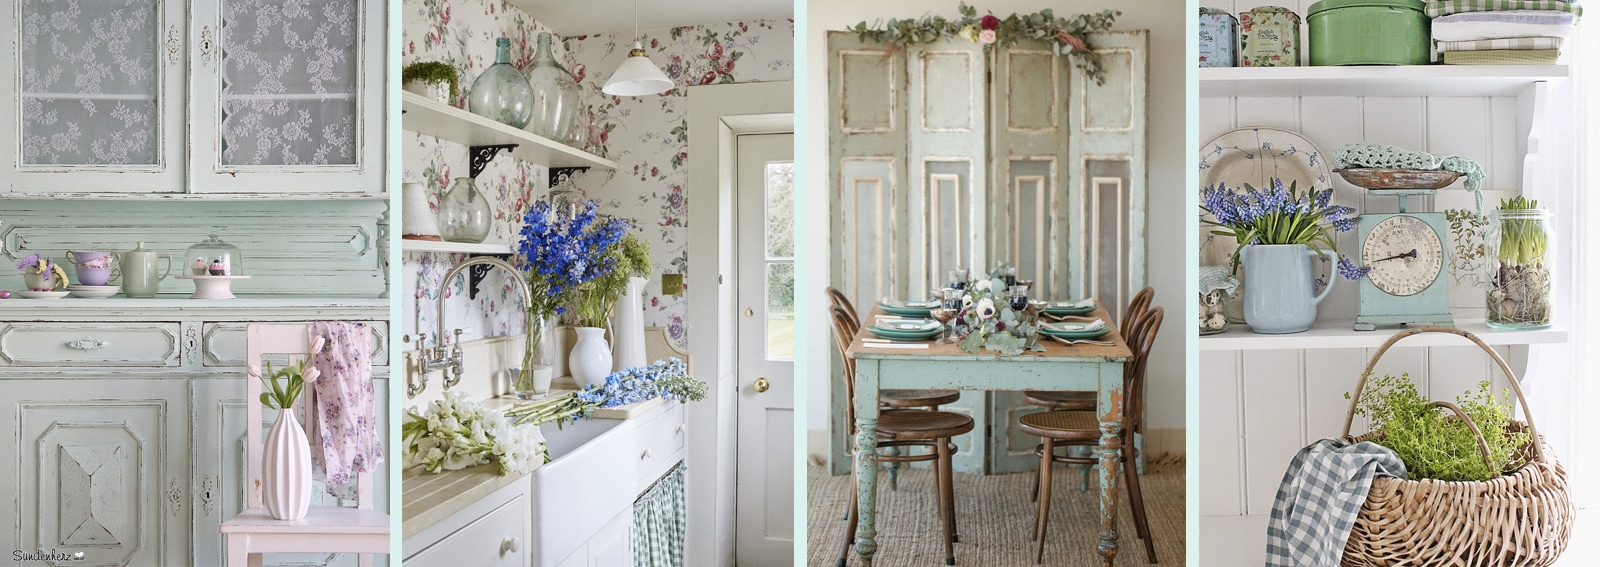 Pareti A Righe Shabby Chic the u201cshabby chicu201d trend began two decades ago and is